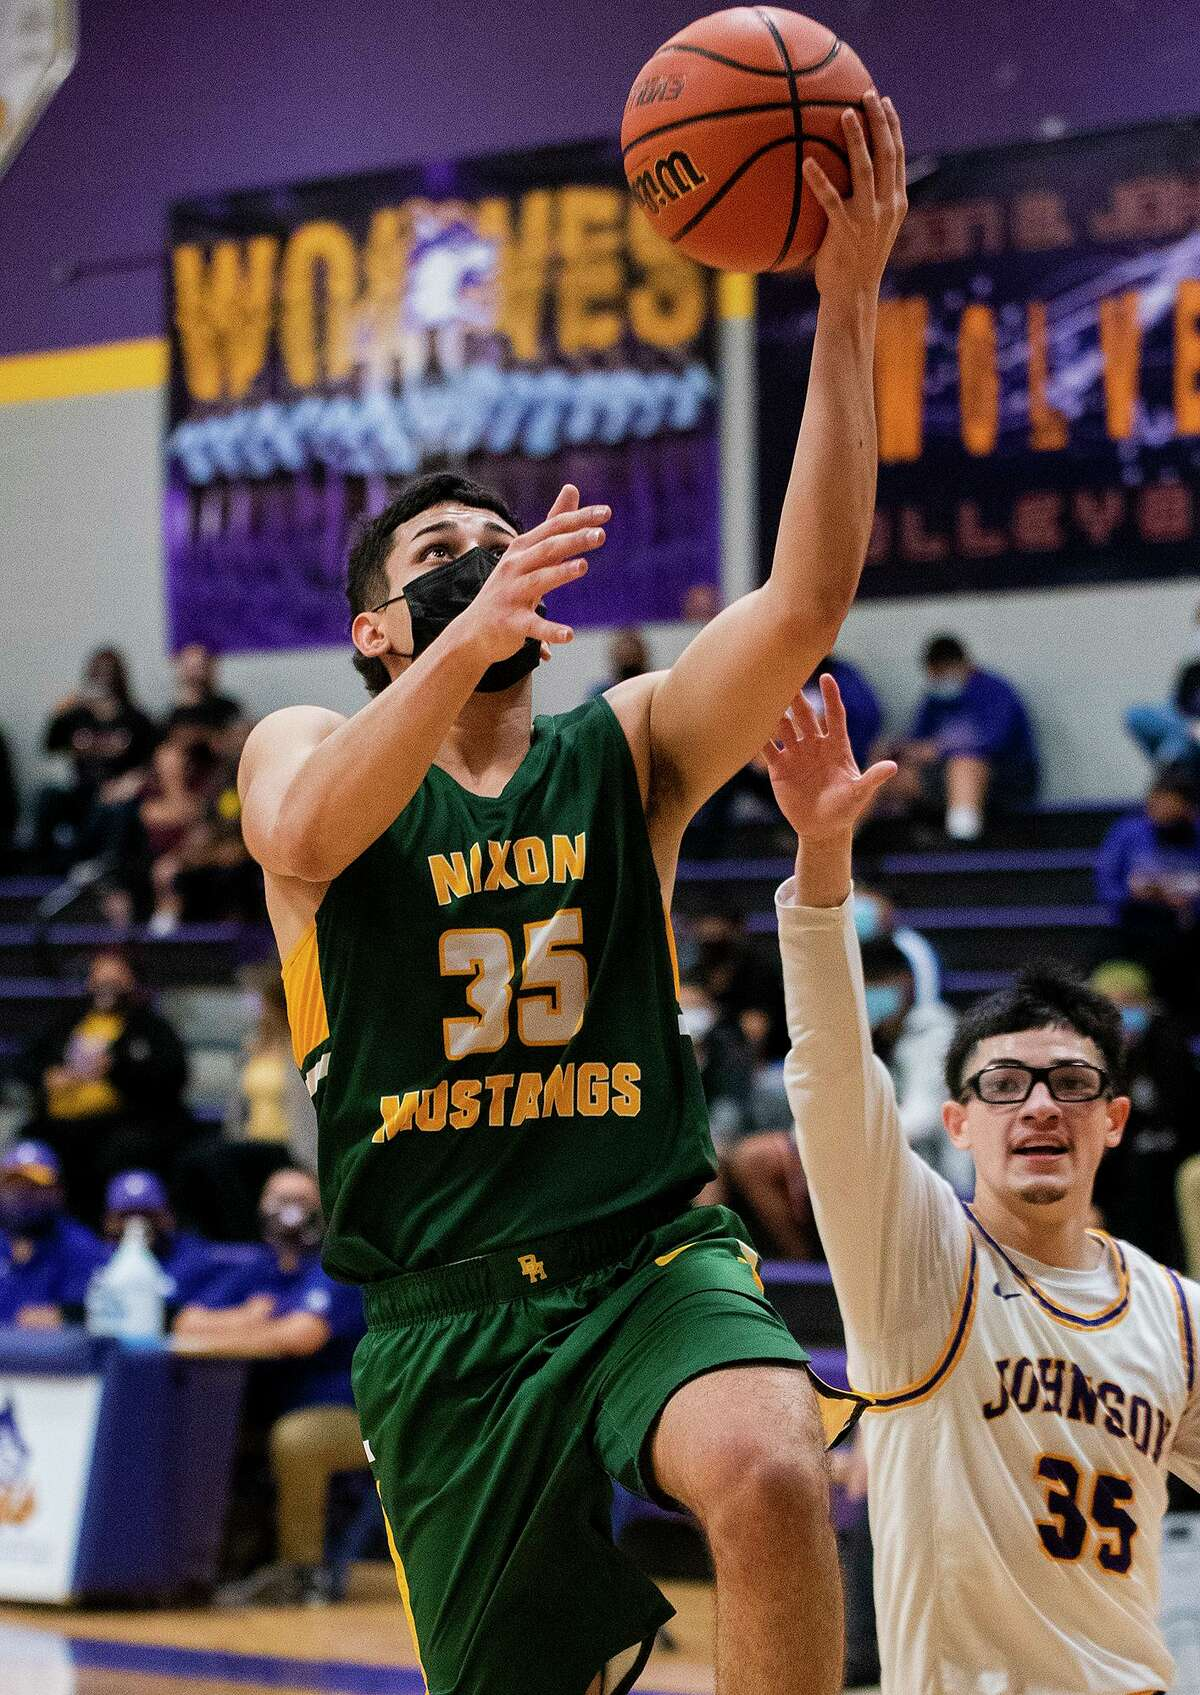 Bryan Garcia and the Nixon Mustangs remained perfect in District 30-6A play as they defeated LBJ 66-50 Tuesday.